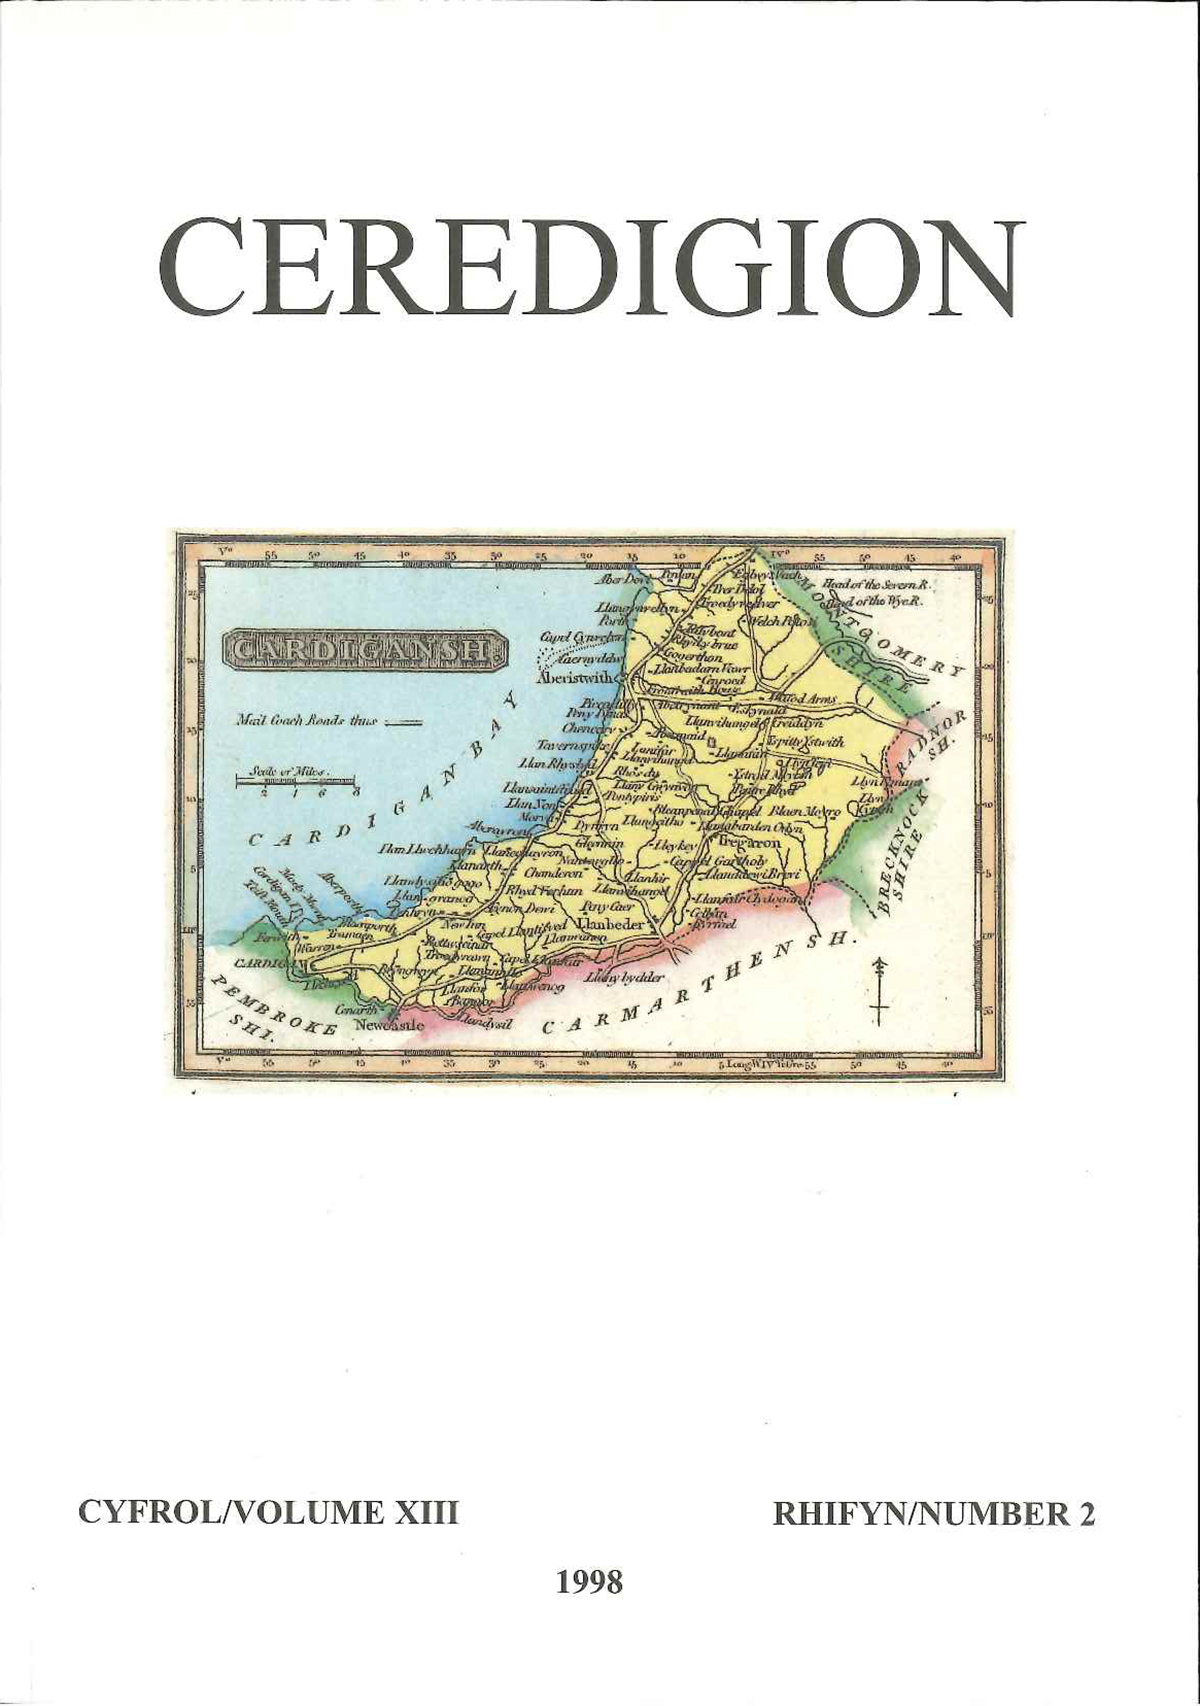 Ceredigion Journal of the Ceredigion Antiquarian Society Vol XIII, No 2 1998 - ISBN 0069 2263